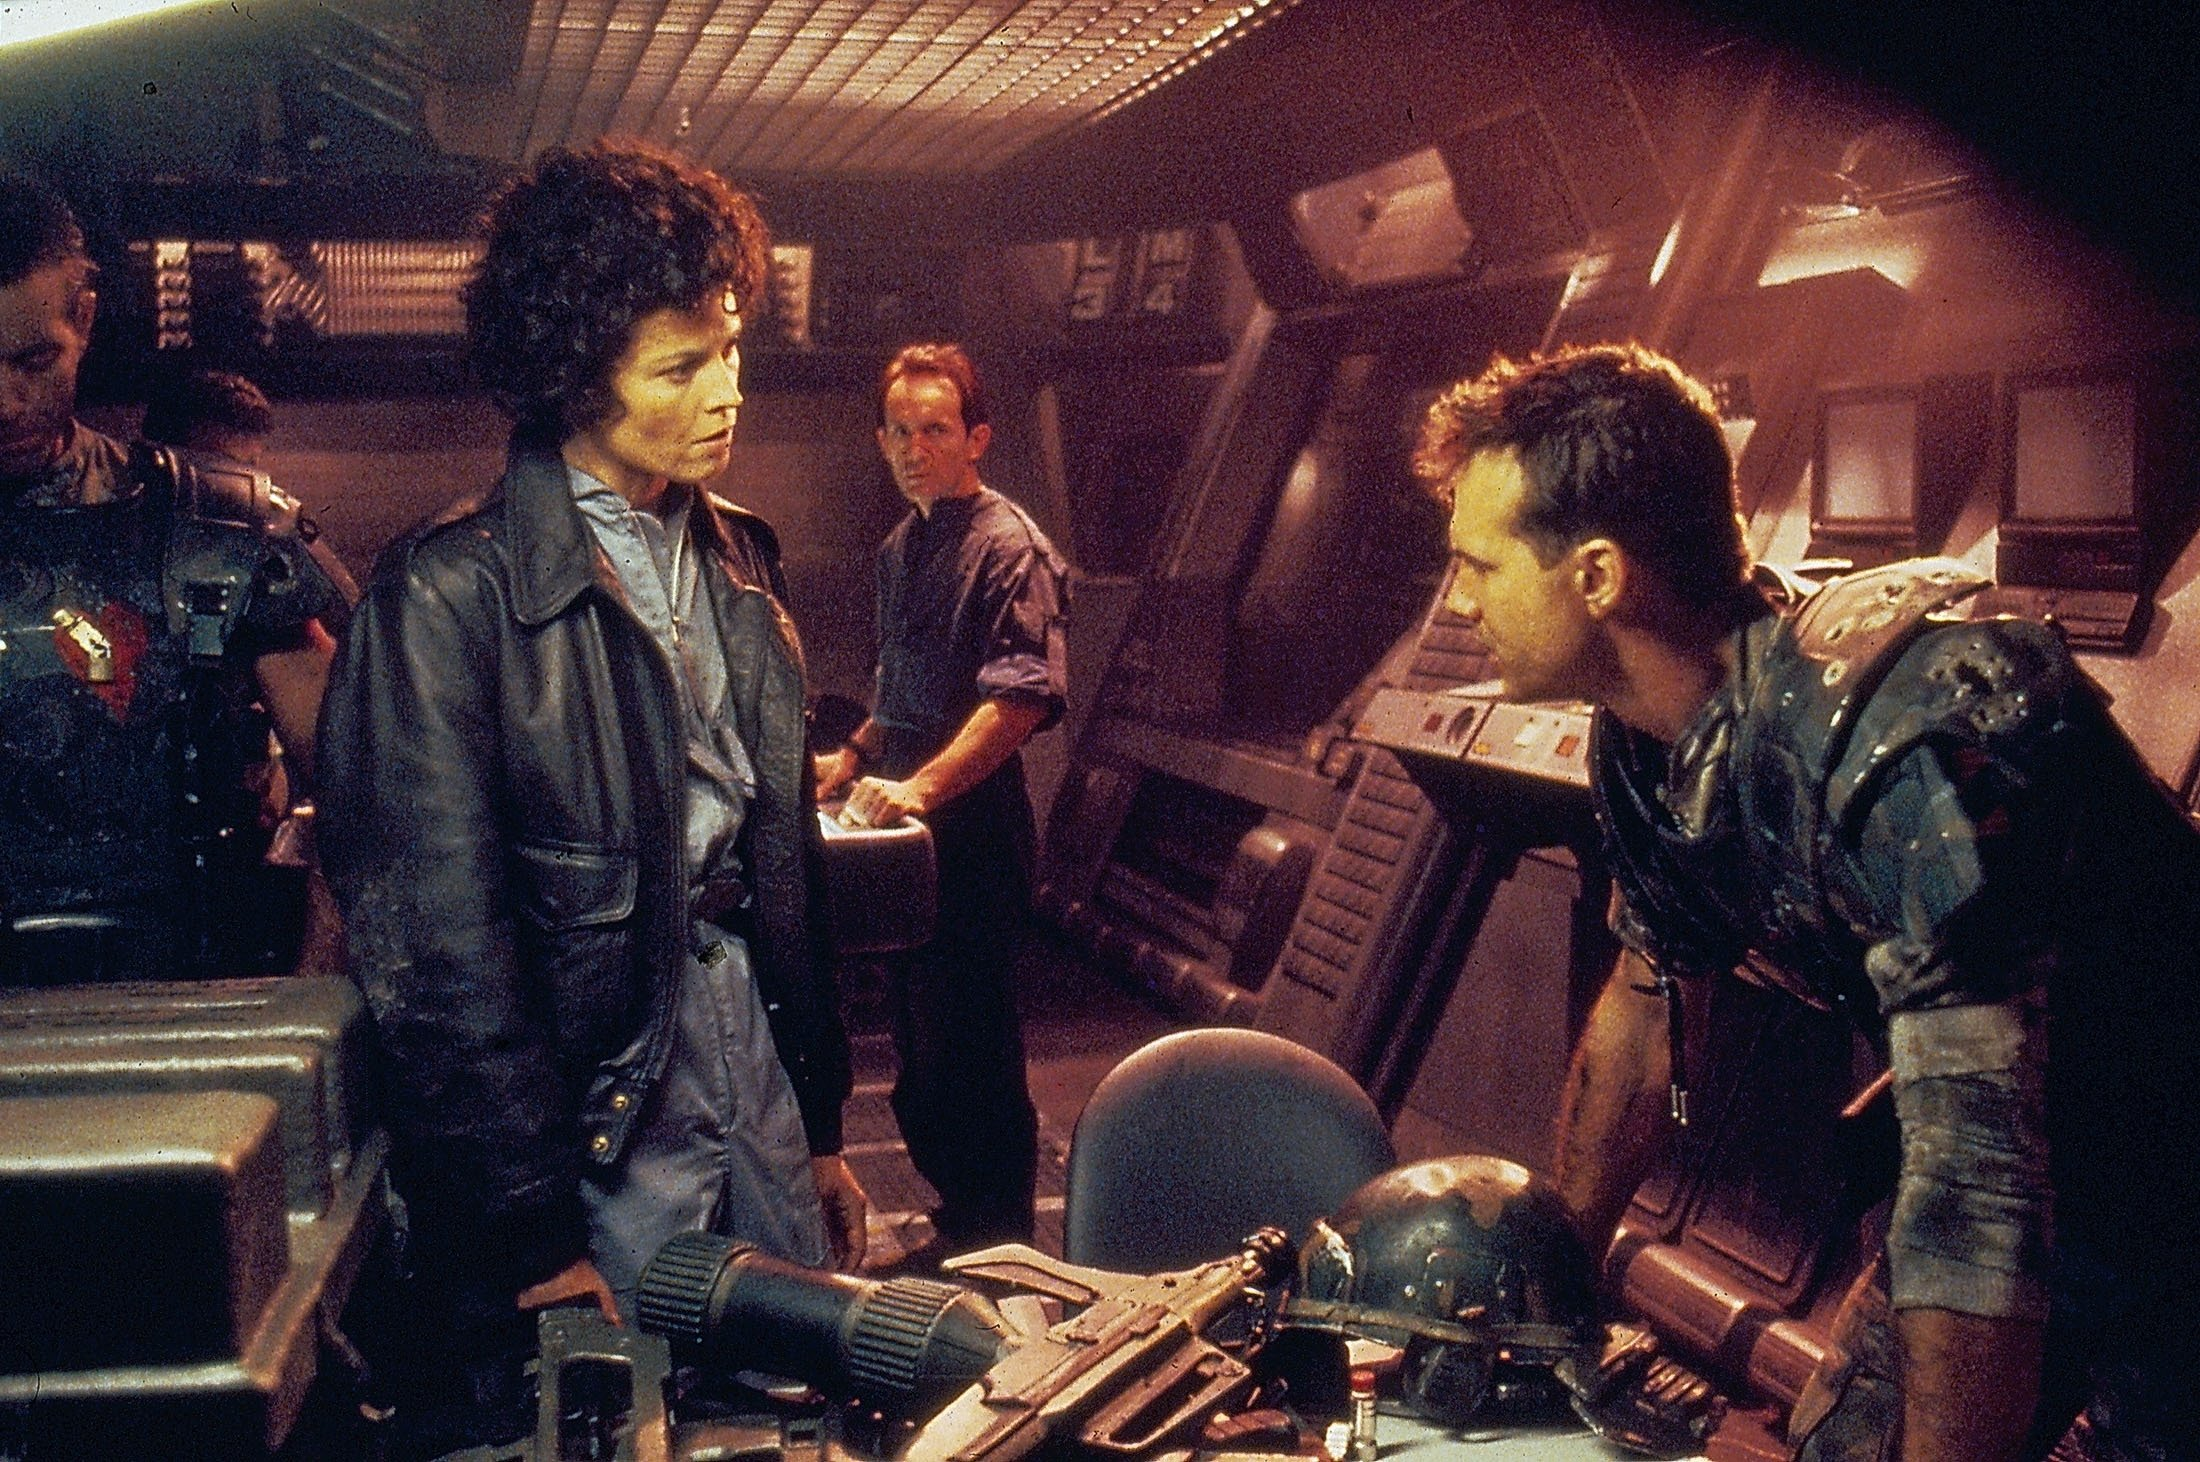 ActorsMichael Biehn (L), Sigourney Weaver (C-L), Lance Henriksen (C-R) and Bill Paxton, have a discussion in a scene from the movie 'Aliens', released in 1986. (Getty Images)